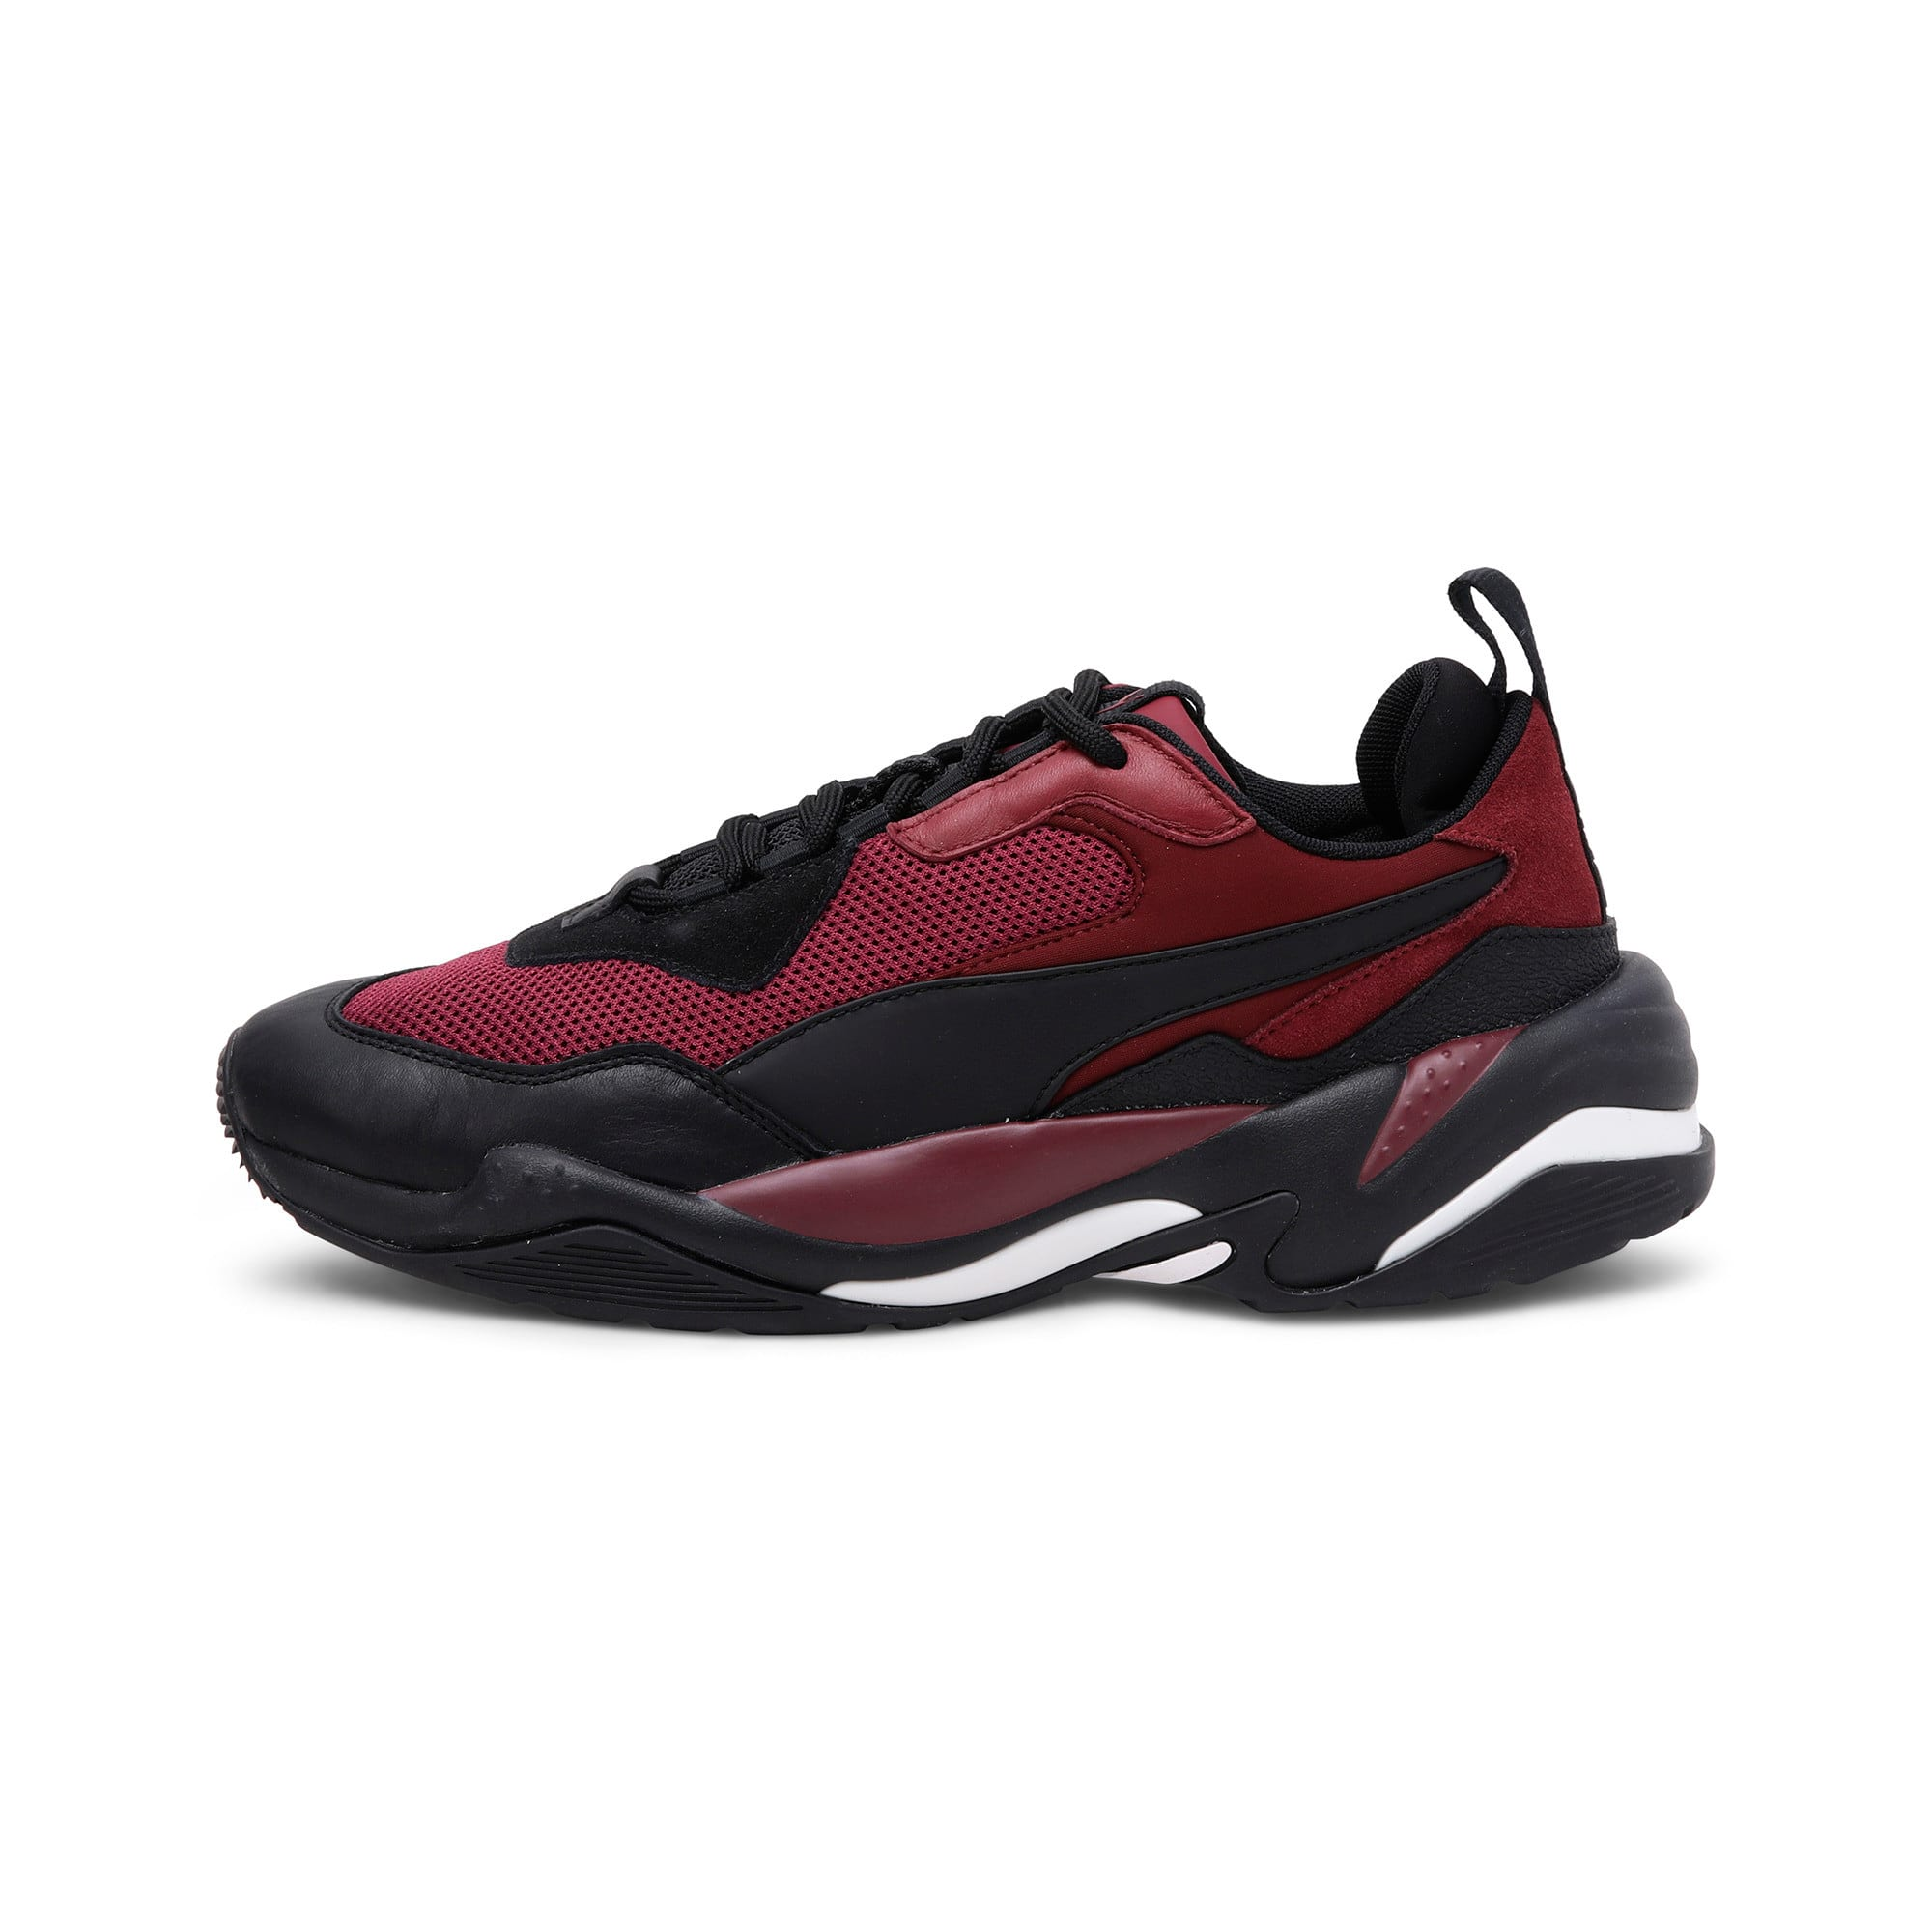 Thumbnail 1 of Thunder Spectra Trainers, Rhododendron-P Black-T Port, medium-IND